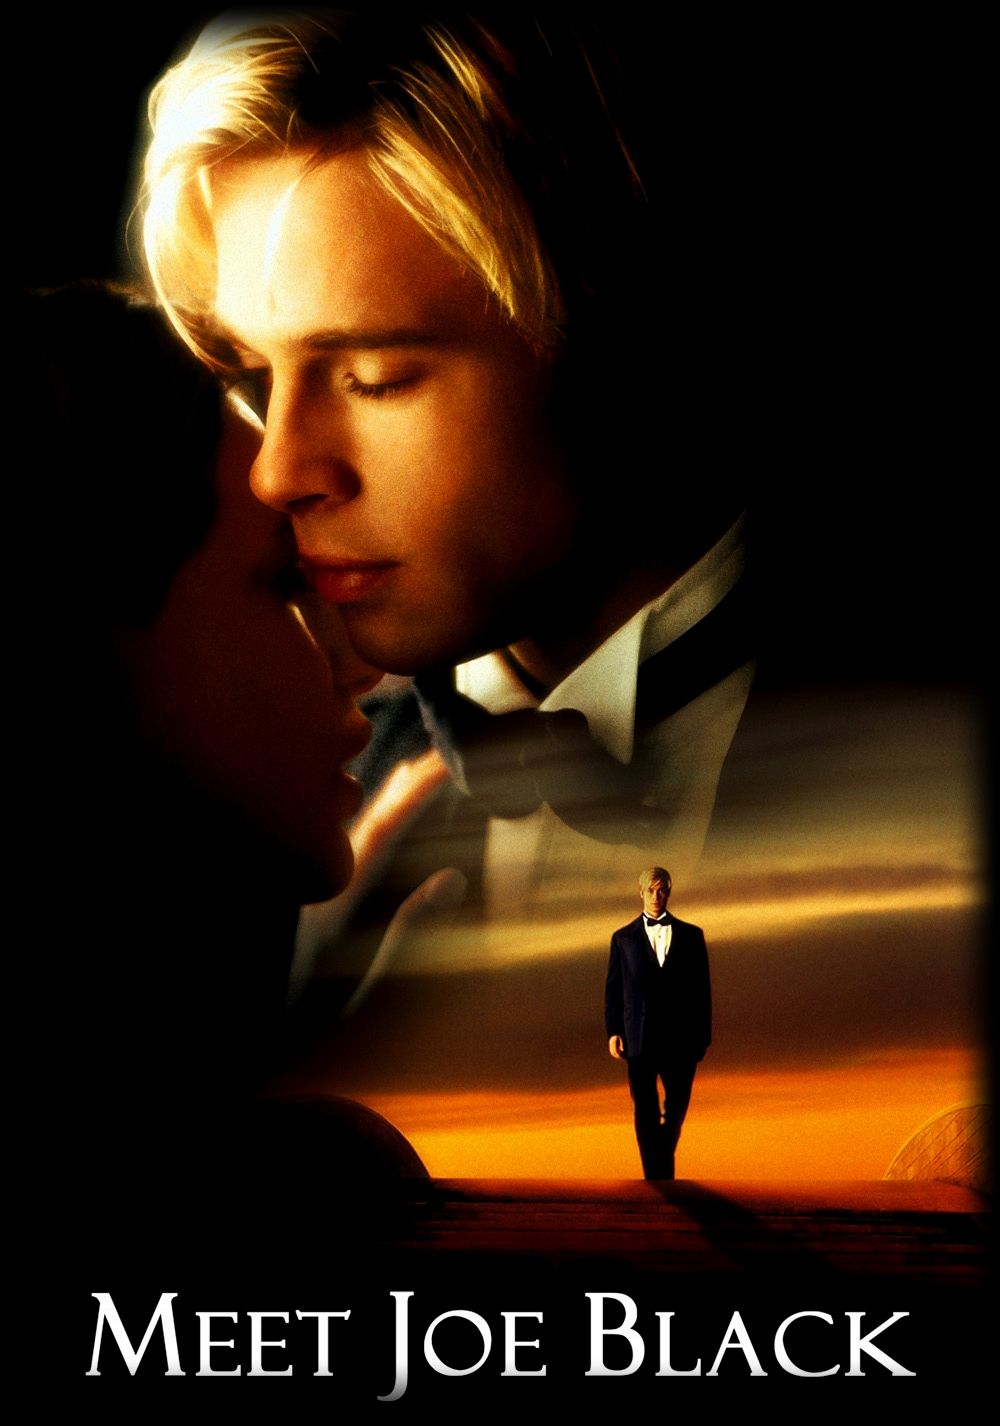 Stiahni si HD Filmy Seznamte se, Joe Black / Meet Joe Black (1998)(CZ/EN)[1080p][HEVC]